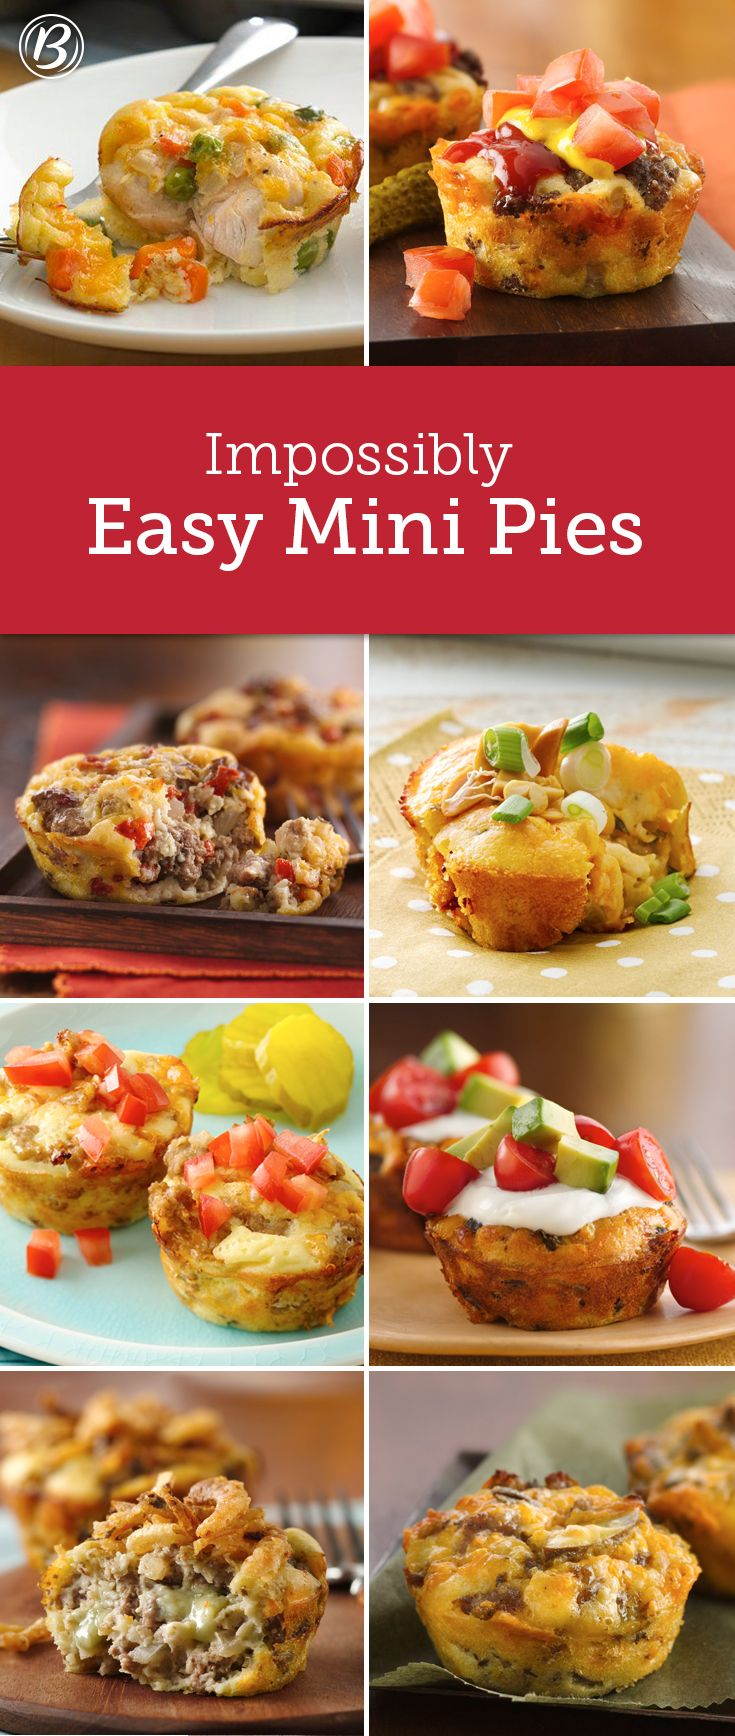 Your family is sure to love these muffin-tin twists on their favorite dinners. Customizable, freezable and perfect for lunch, dinner or as an on-the-go snack!